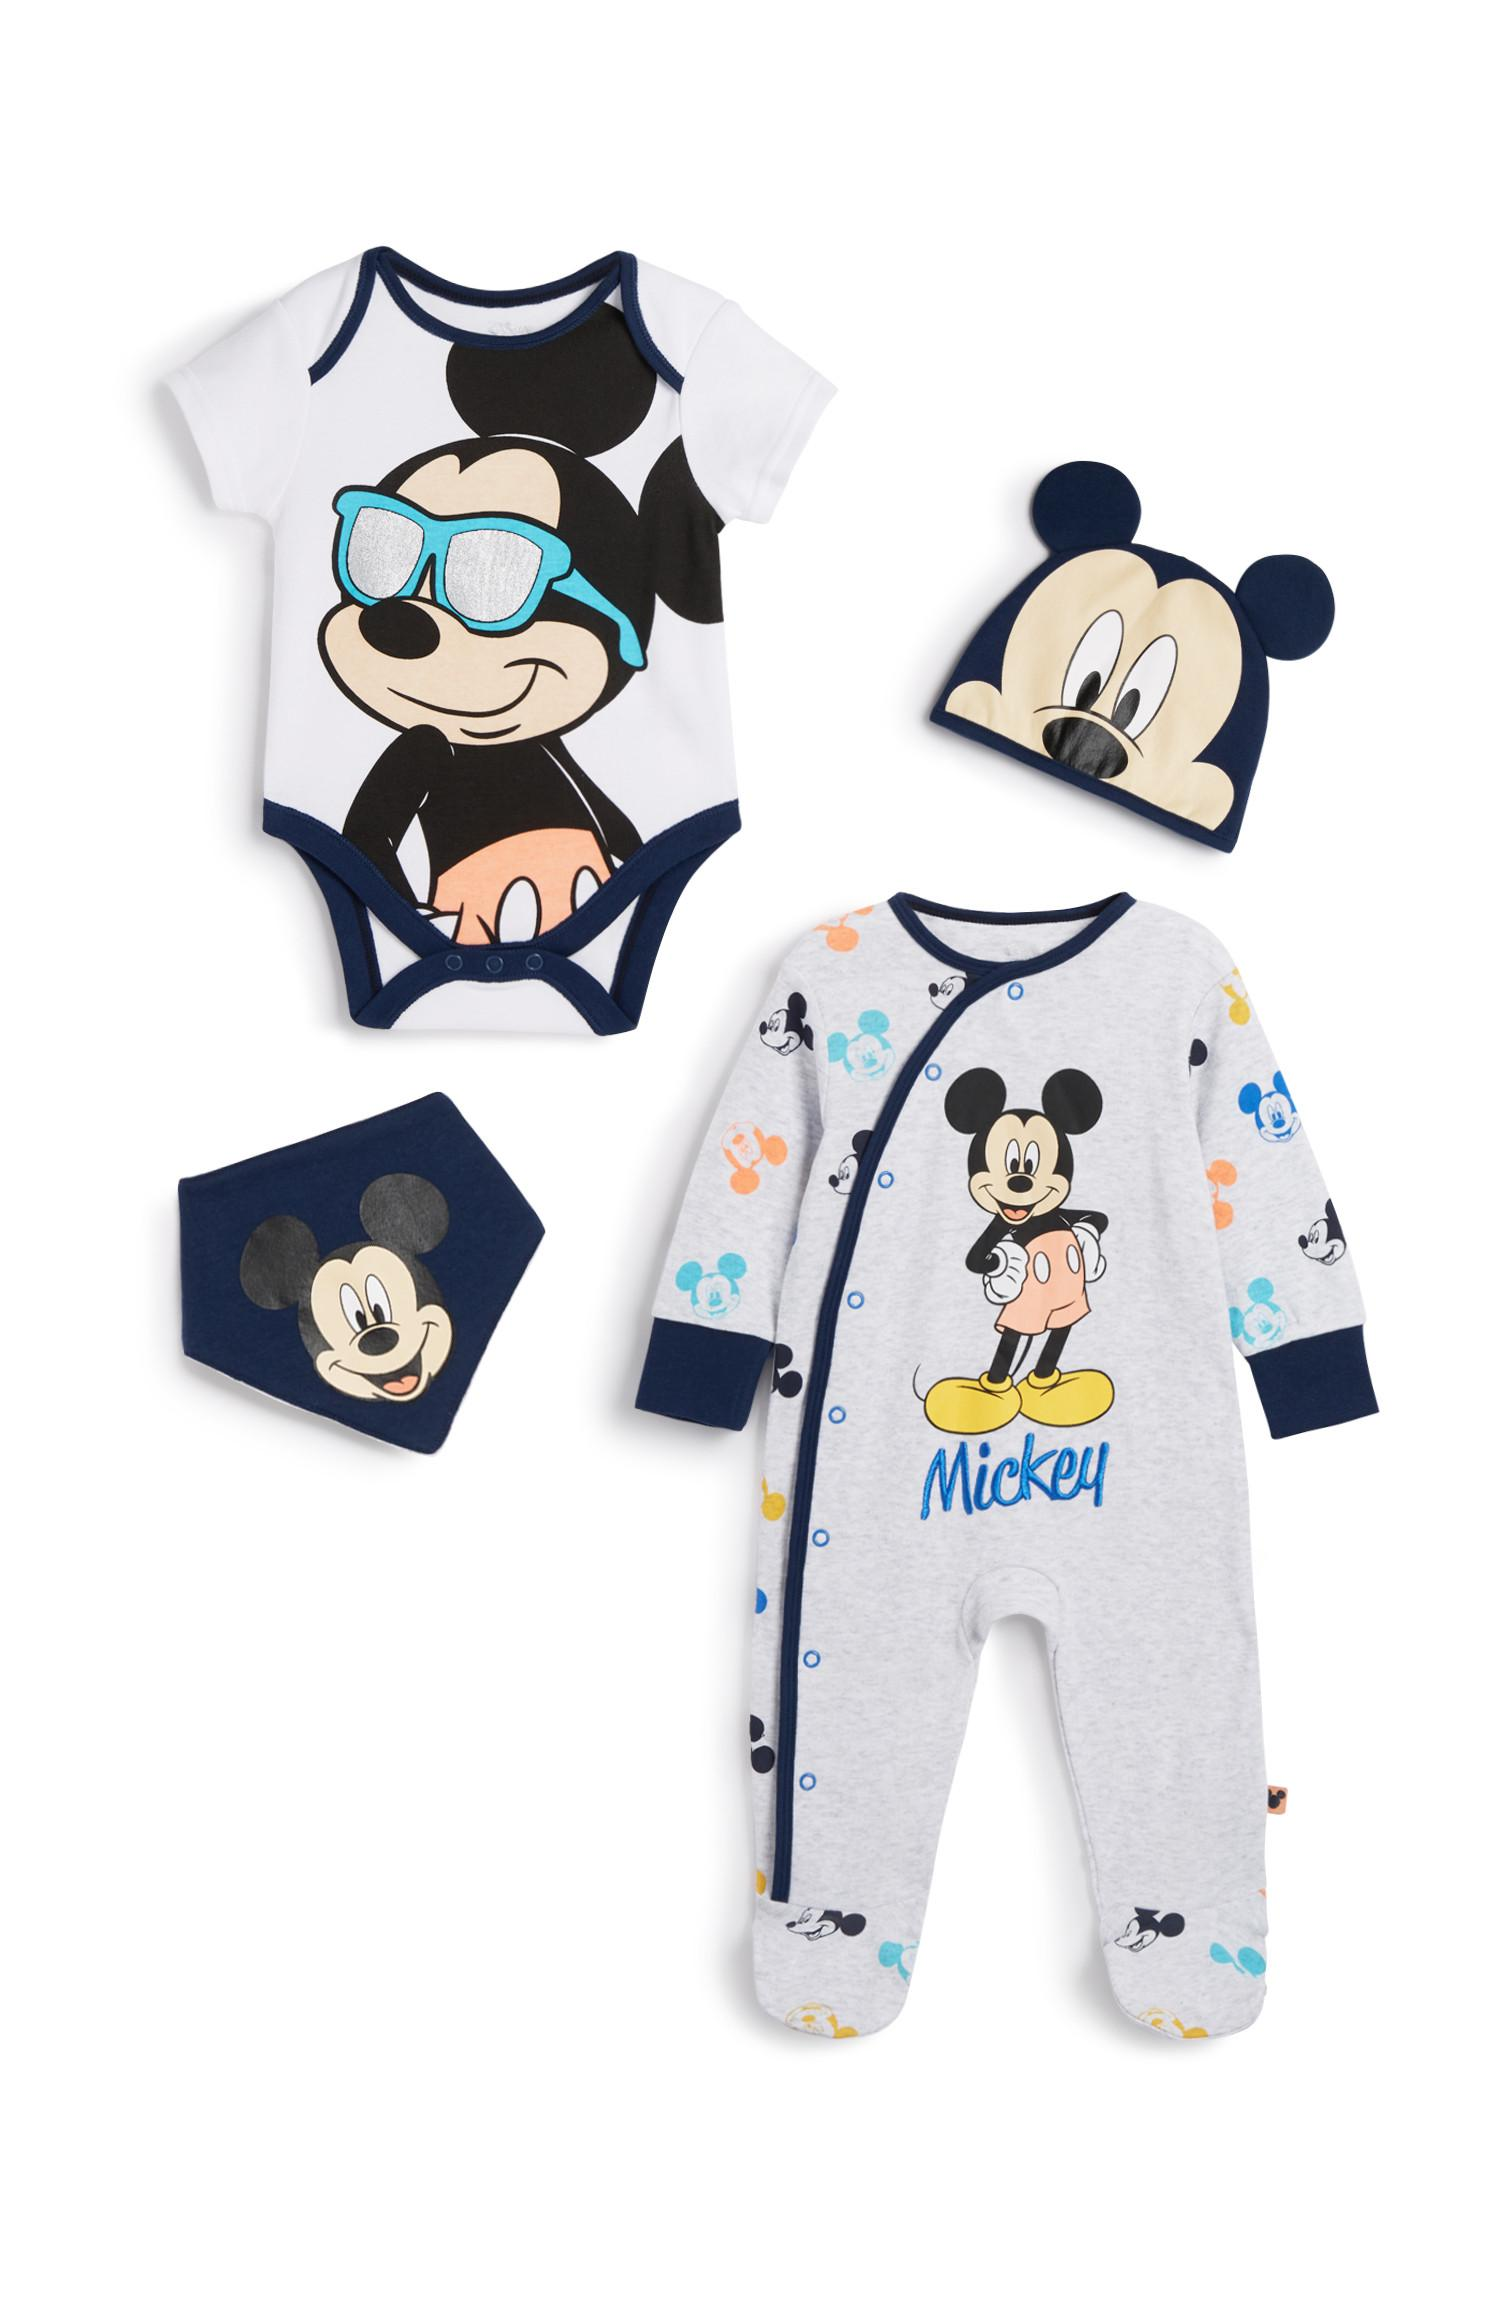 Mickey Mouse 4Pc Outfit Set